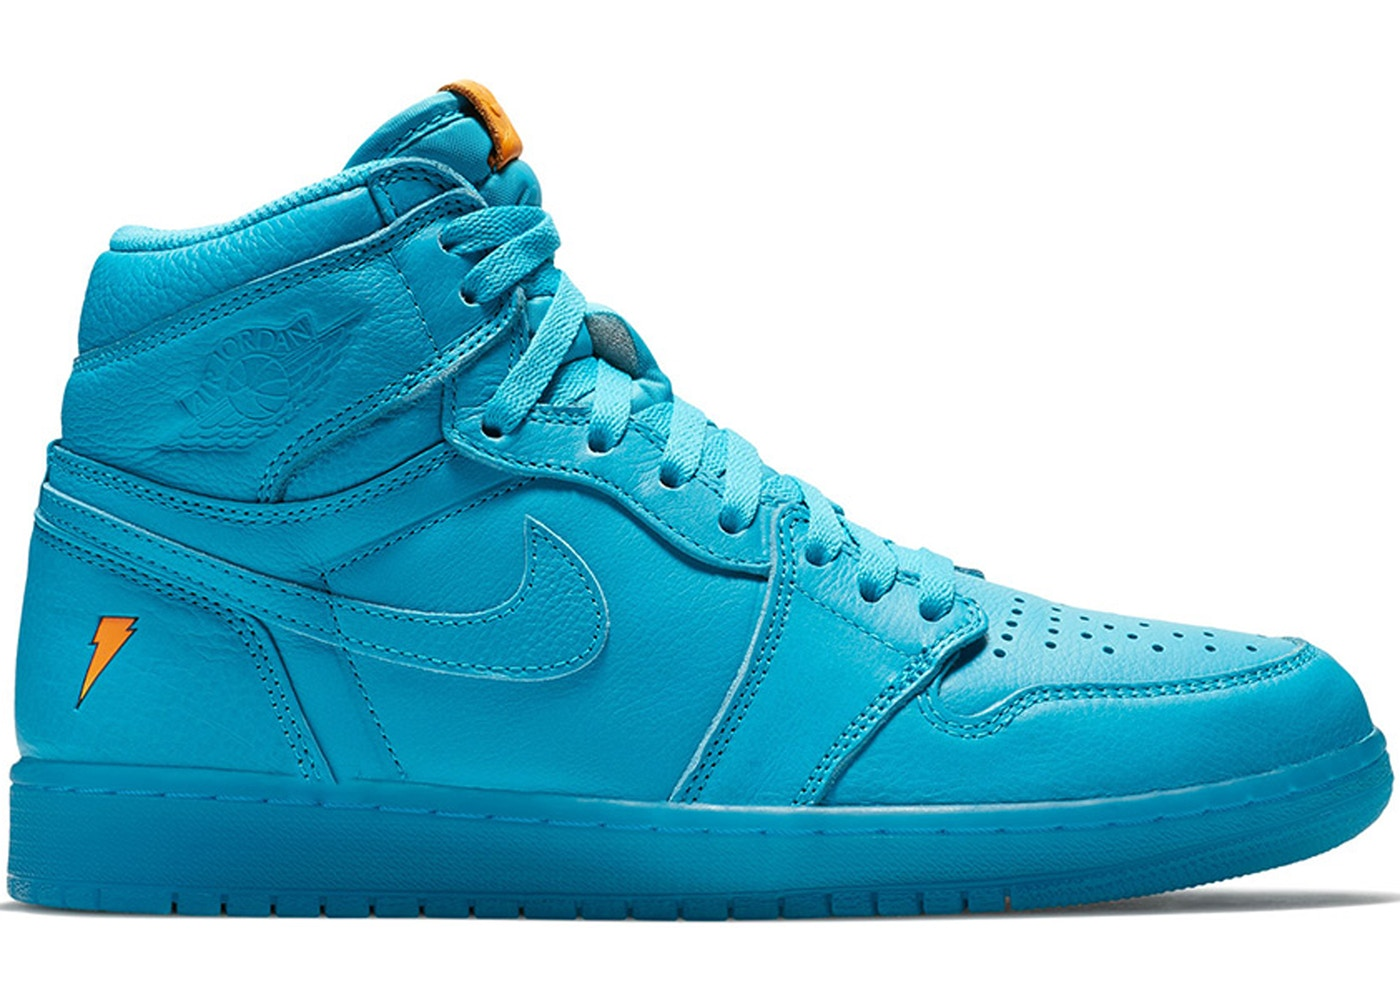 reputable site 71092 7bfeb Jordan 1 Retro High Gatorade Blue Lagoon